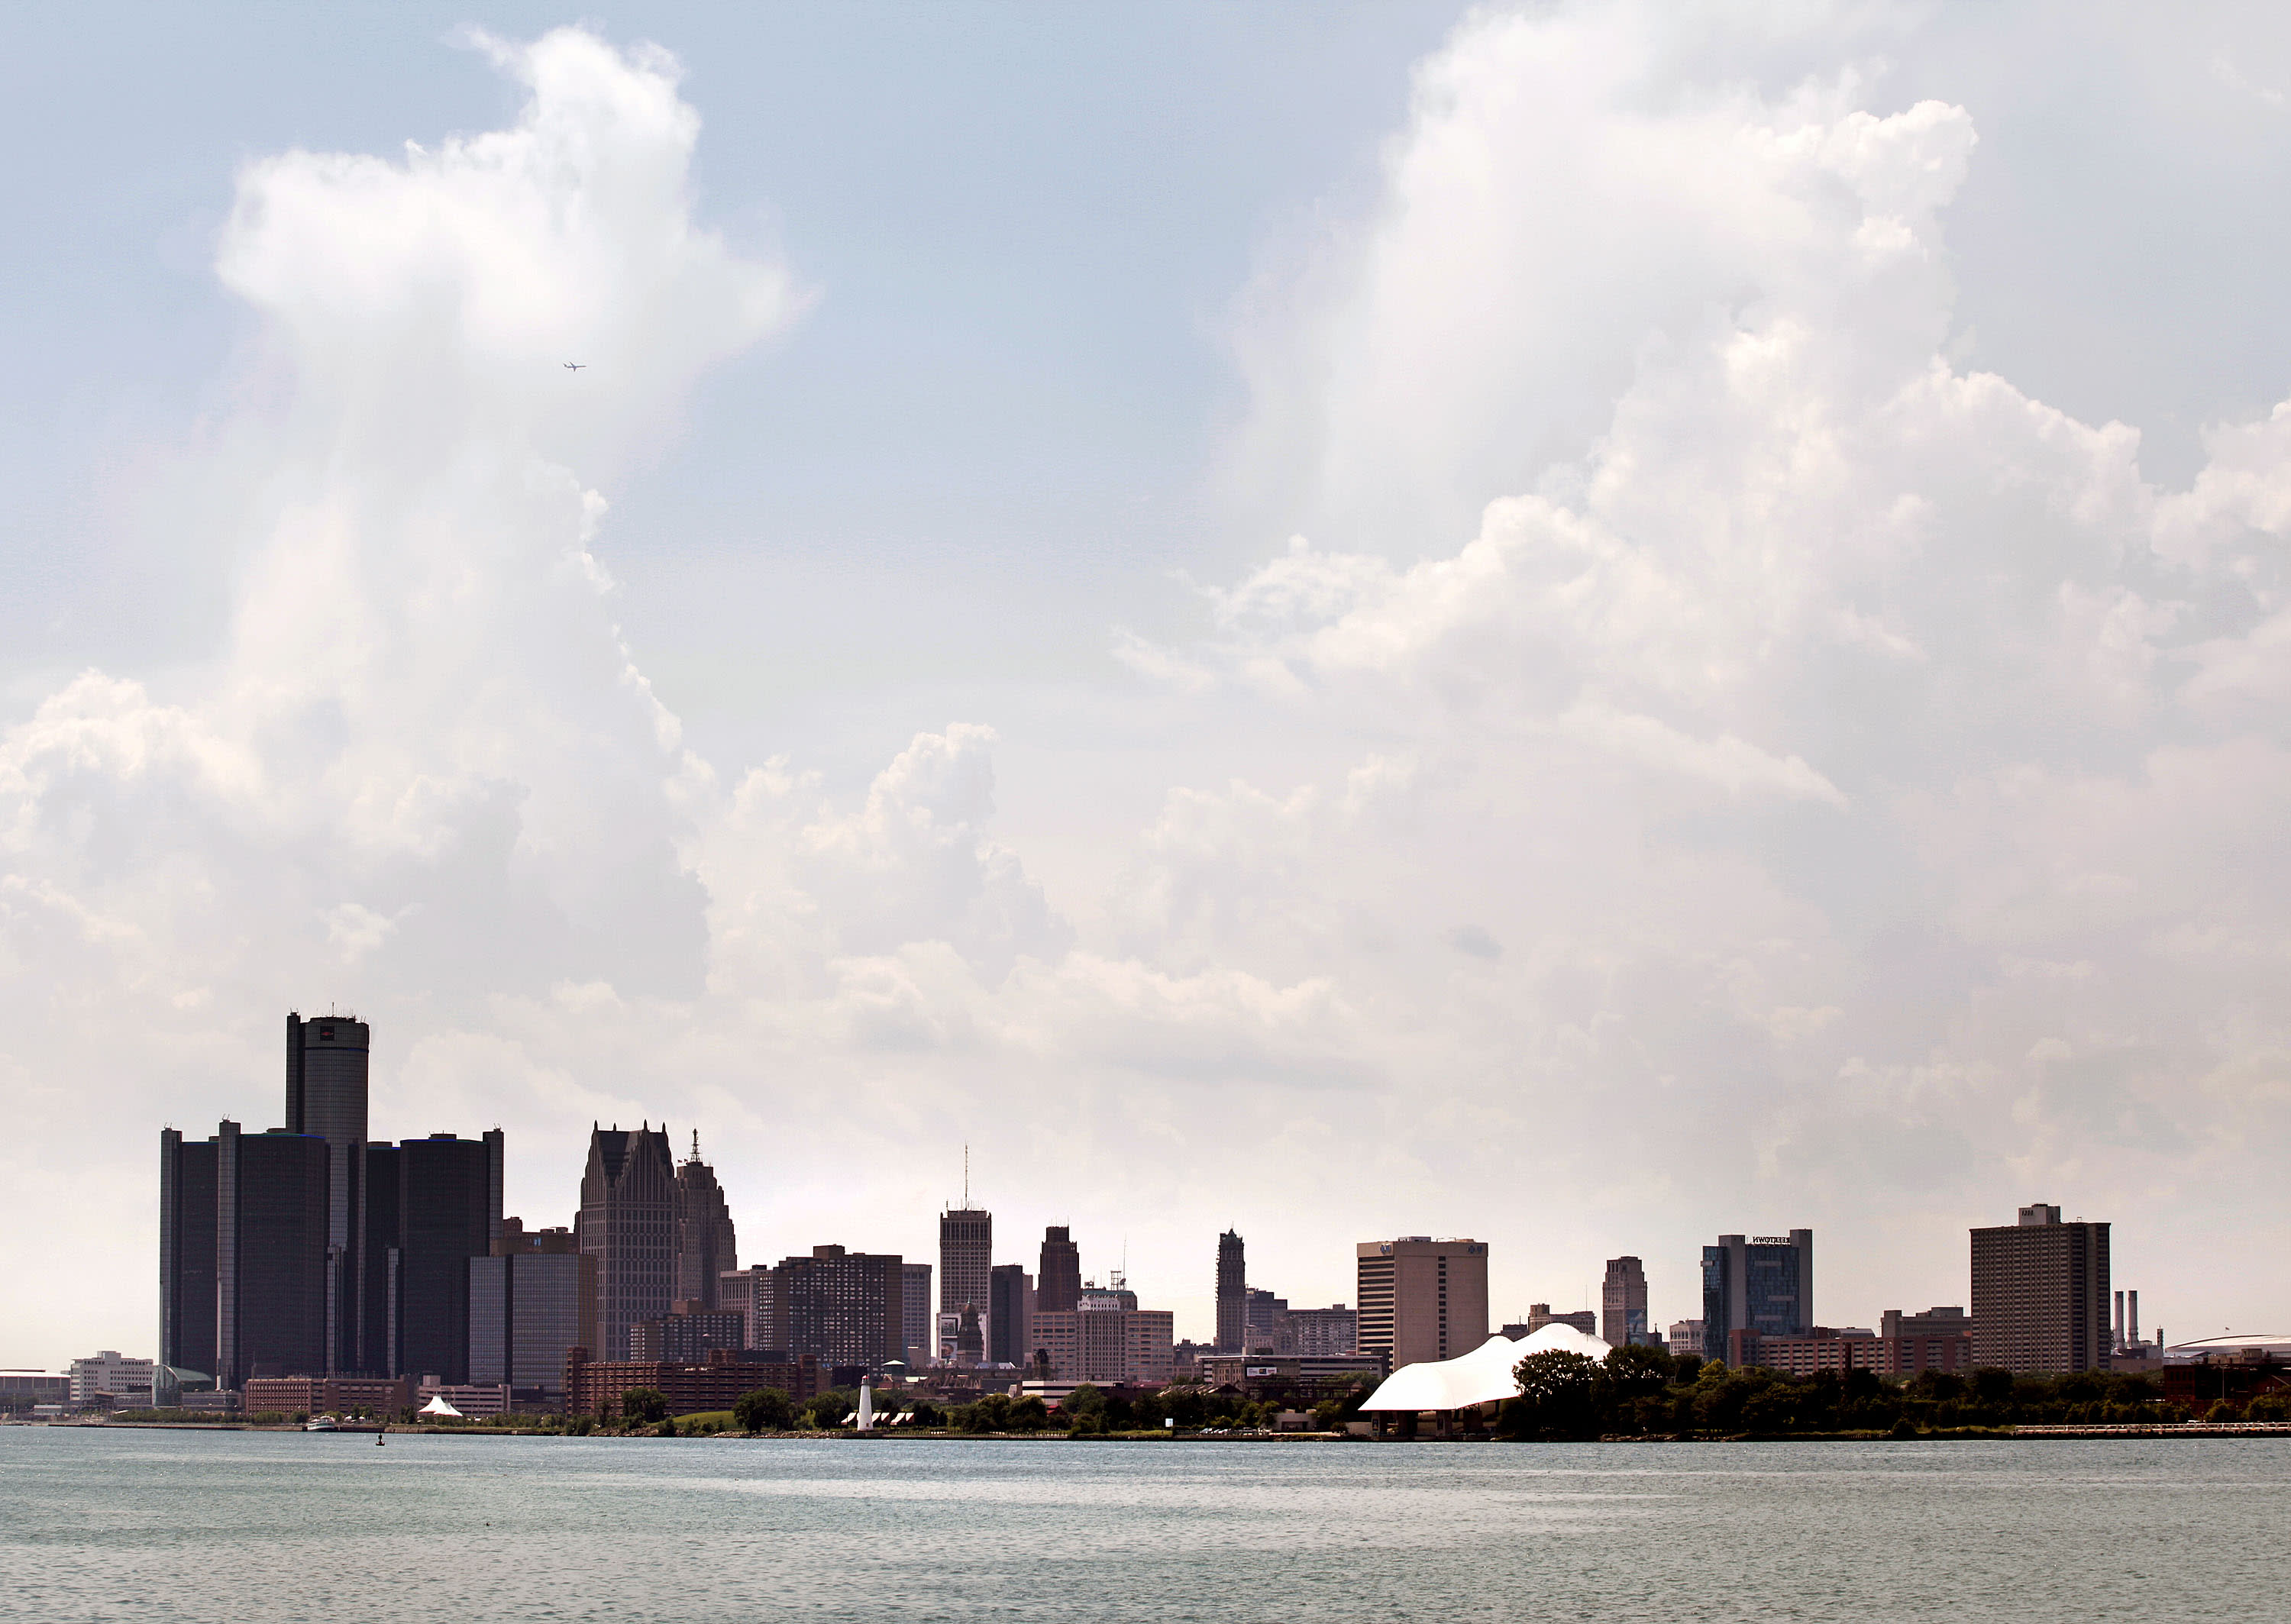 The city of Detroit's skyline on July 18, 2013